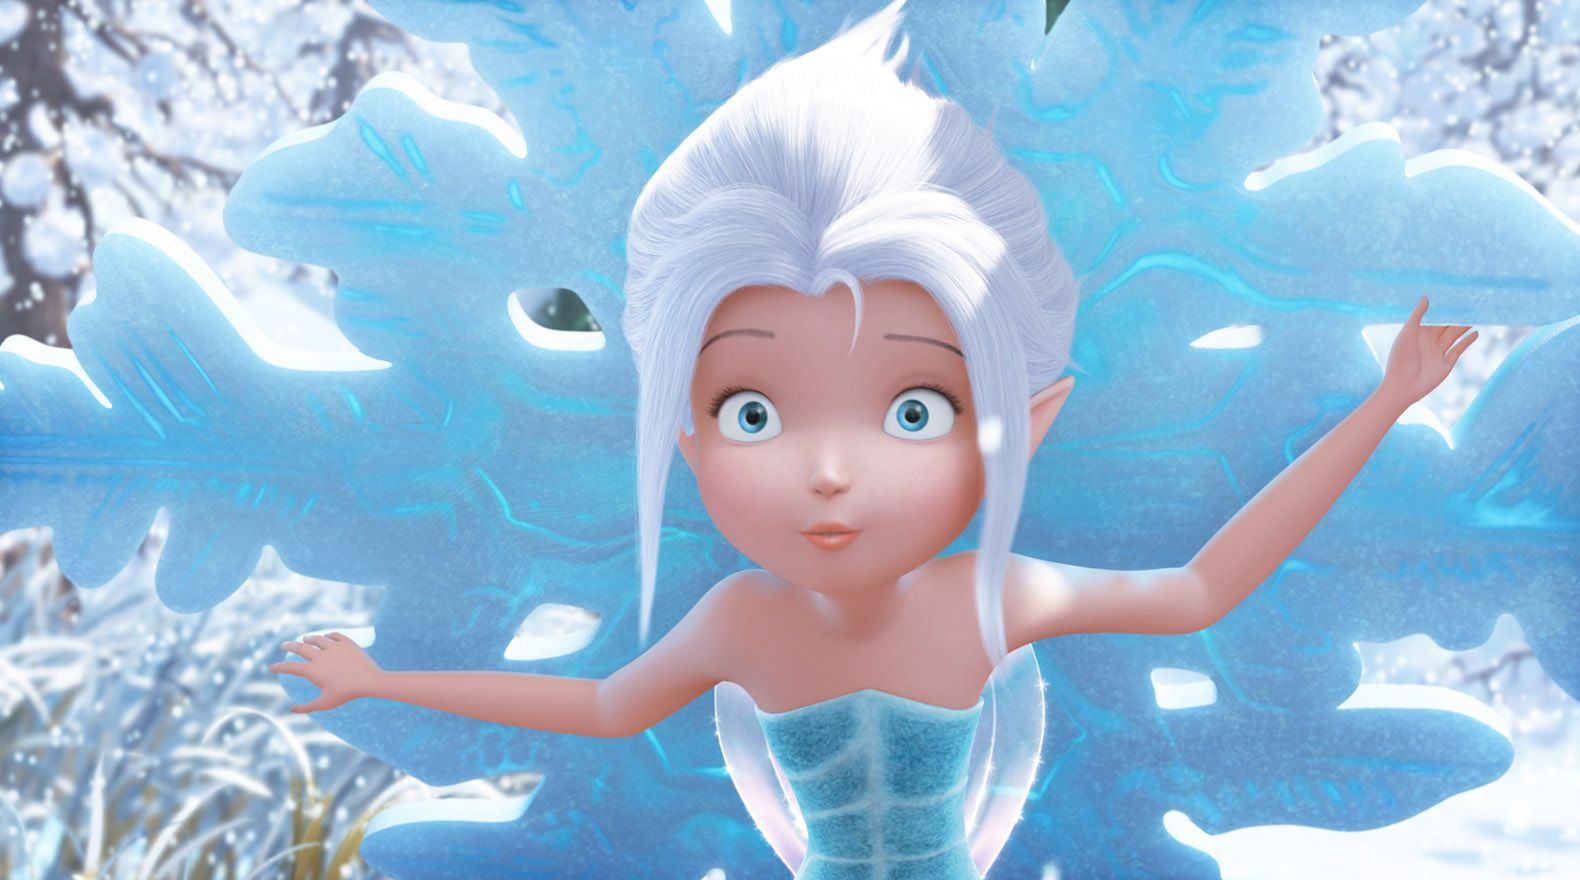 tinkerbell and friends periwinkle - Google Search ...